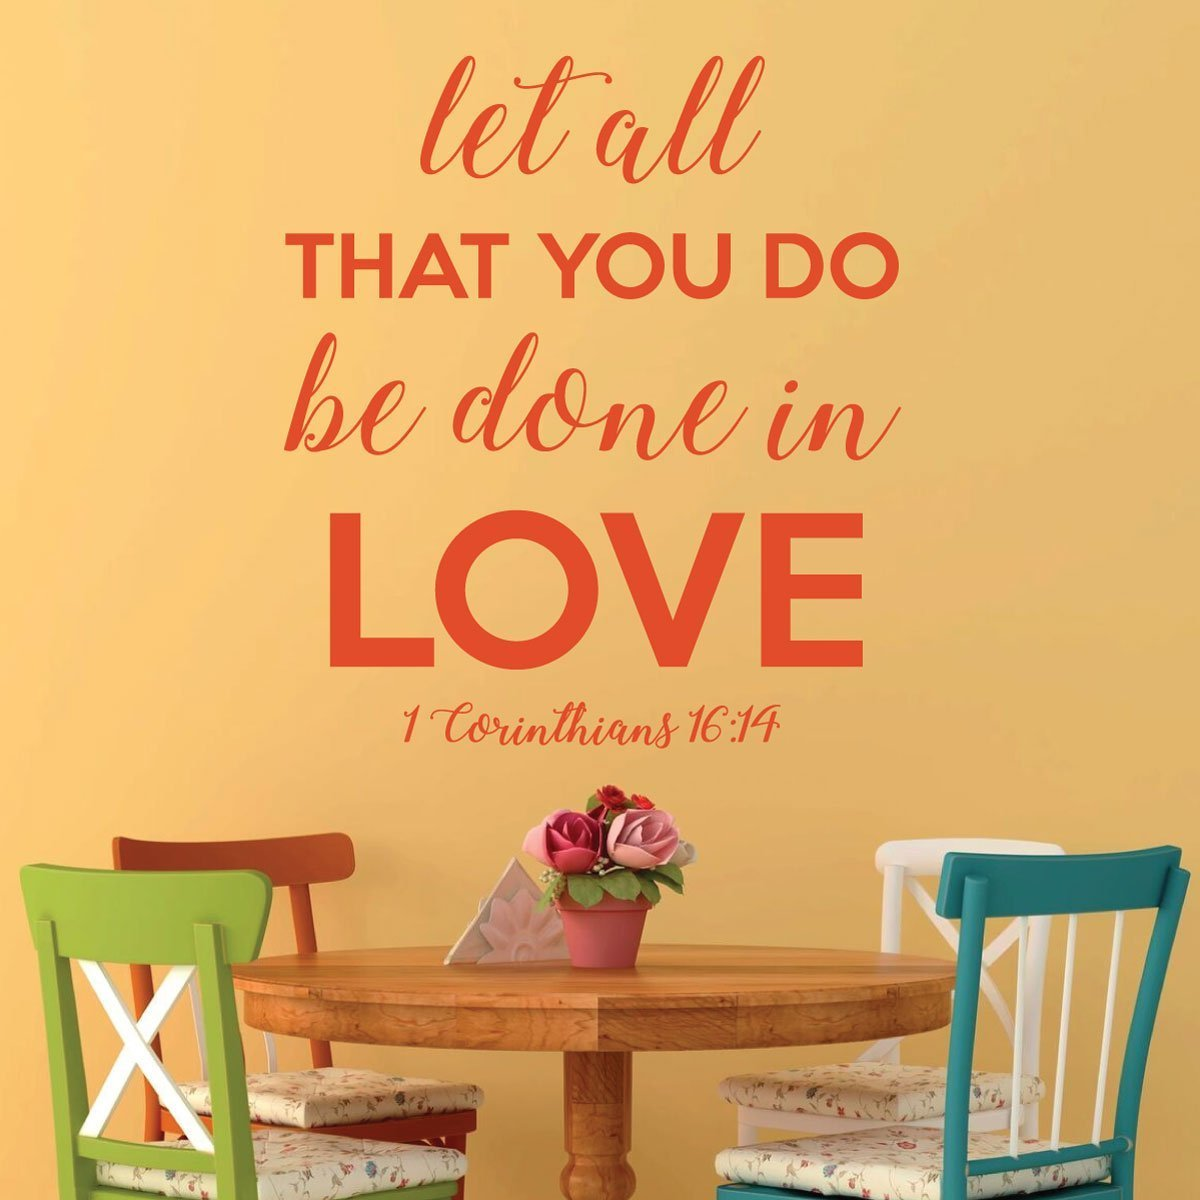 Love Scriptures - 1 Corinthians 16:14 - Let All That You Do Be Done ...